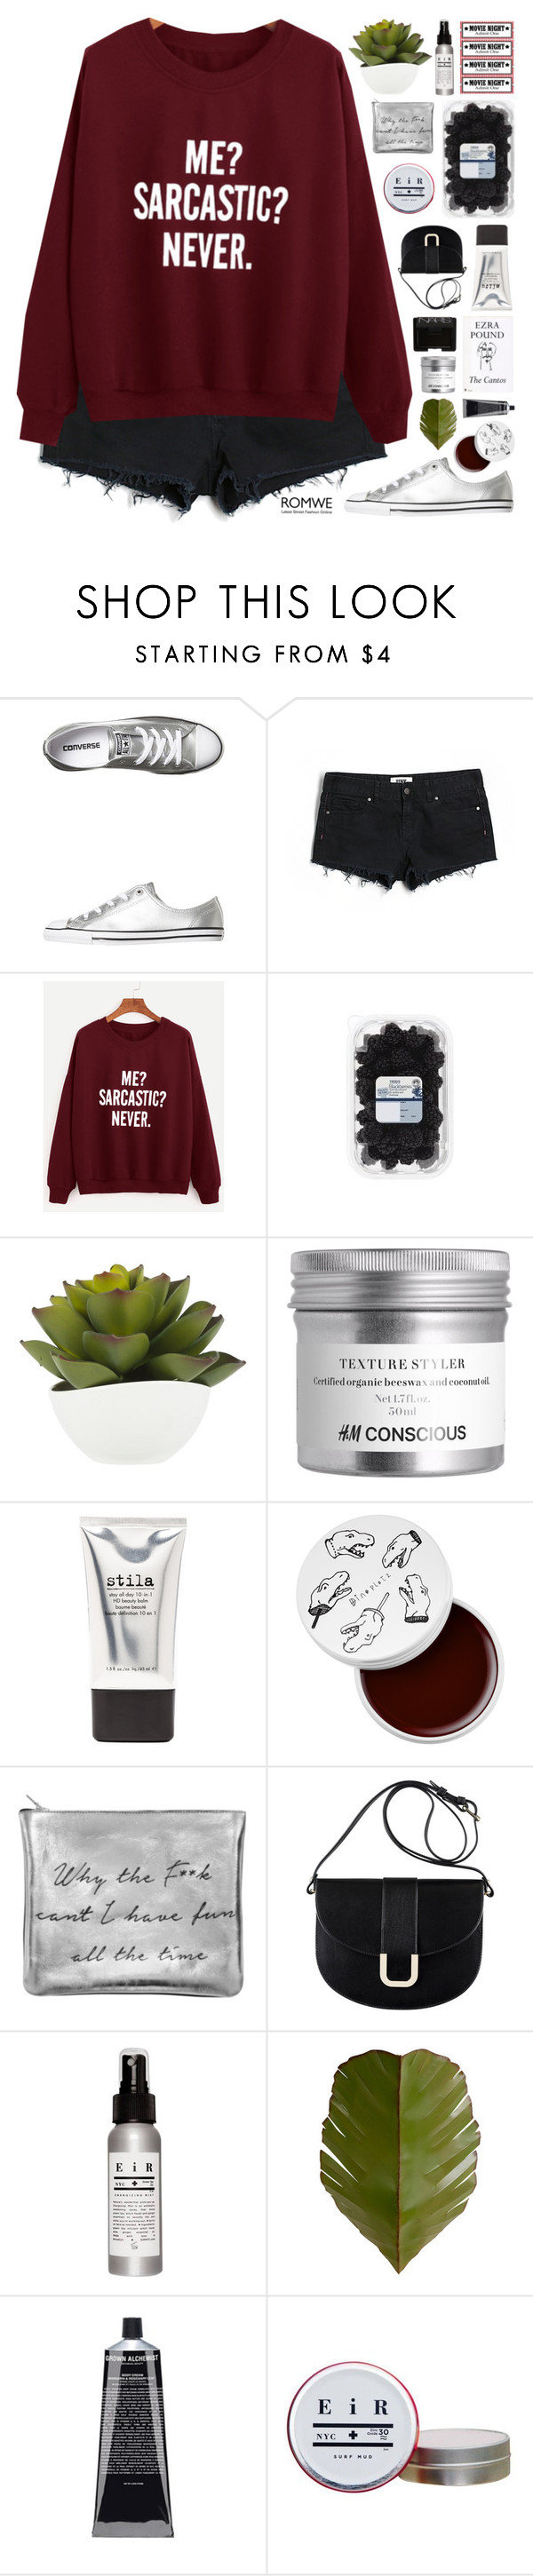 """Never"" by fee4fashion ❤ liked on Polyvore featuring Converse, Victoria's Secret PINK, Stila, too cool for school, Sarah Baily, A.P.C., Varaluz and NARS Cosmetics"